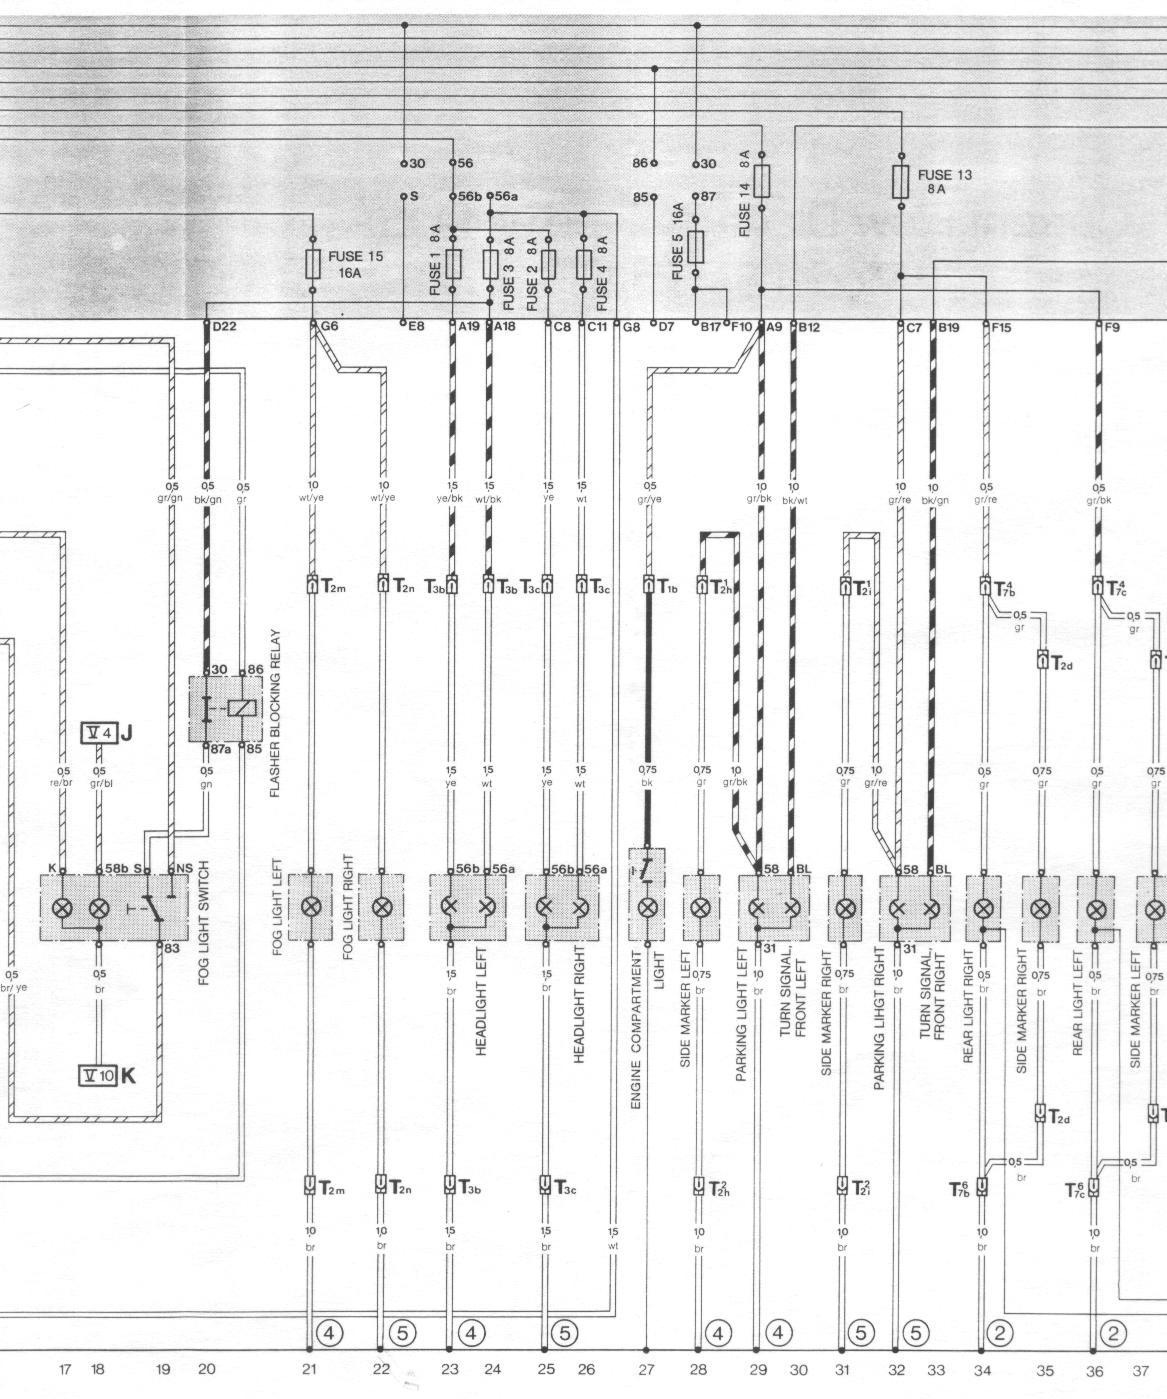 Porsche Ac Wiring Diagrams Just Another Data 1973 1914 Fuse Box Diagram Pelican Parts 924 944 Electrical 911 Engine